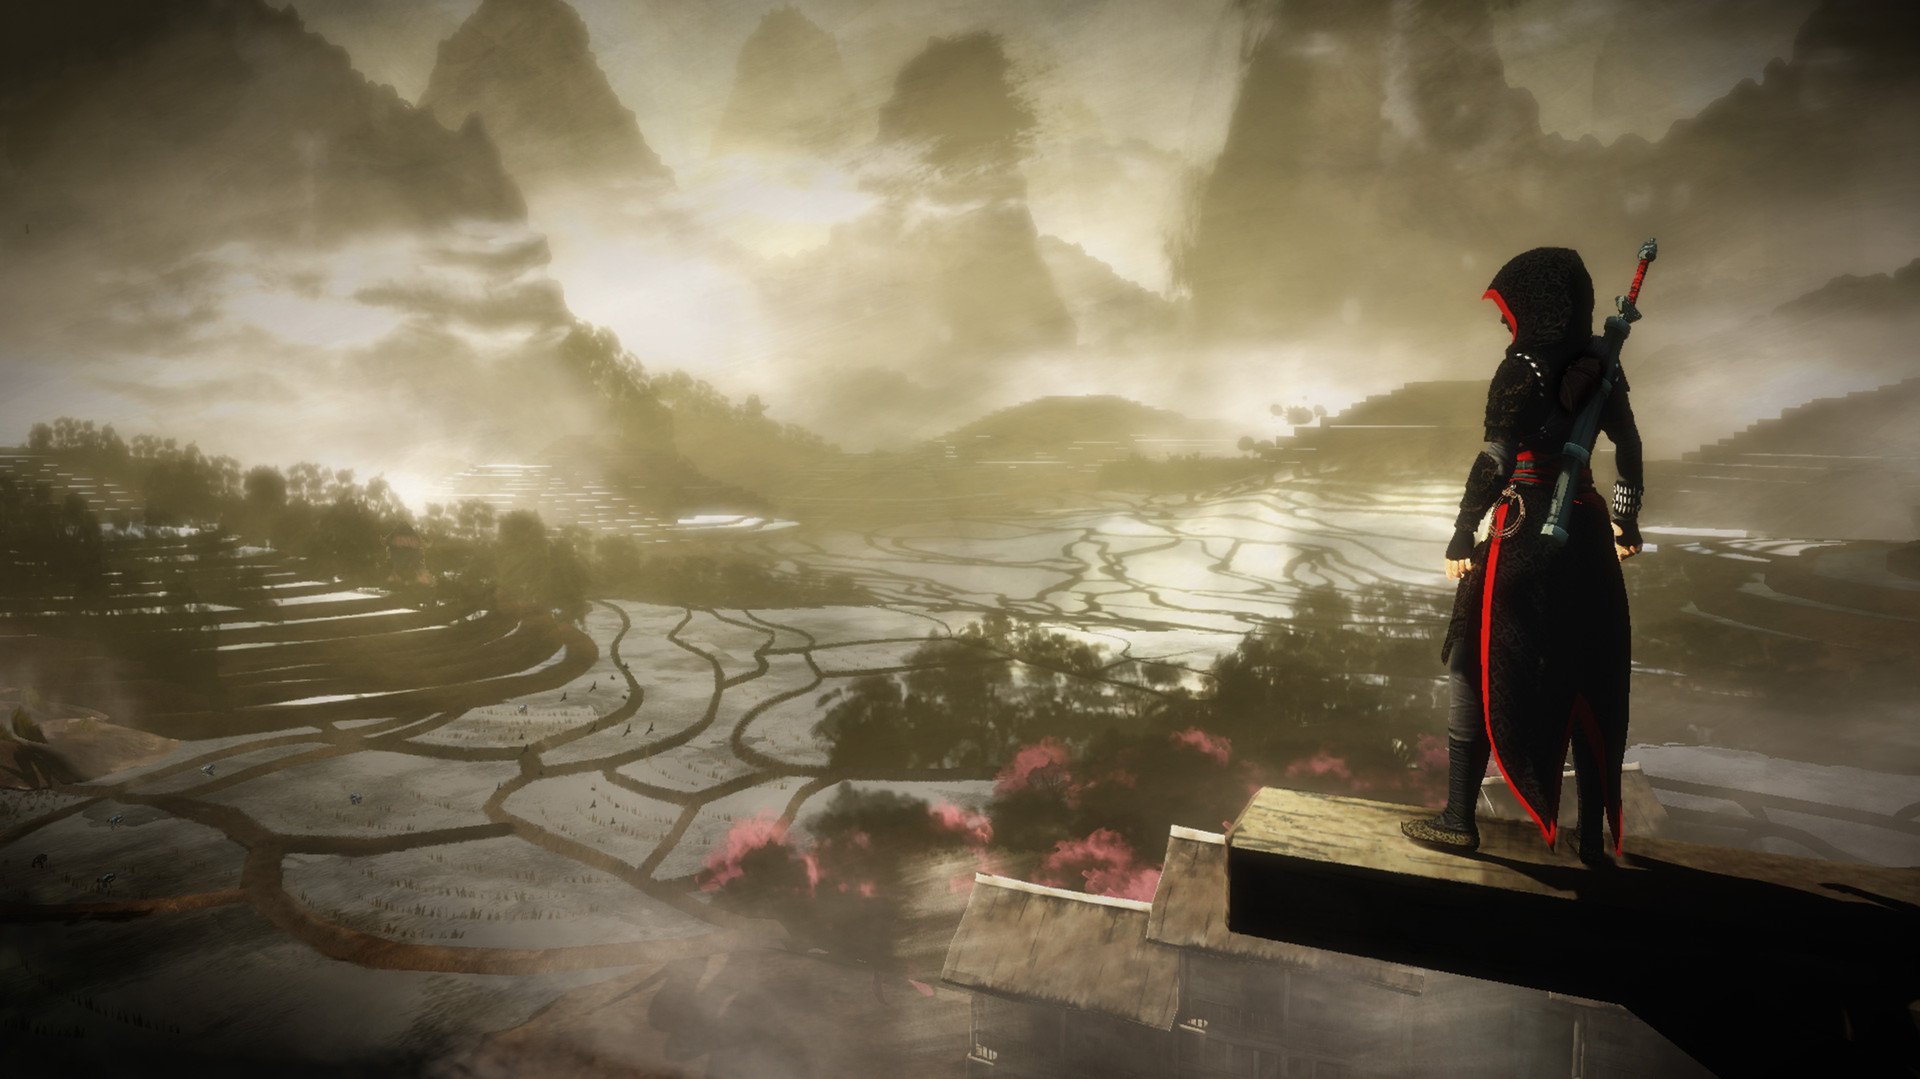 download assassins creed chronicles trilogy pack - reloaded codex elamigos singlelink iso full version repack multi 14 language free for pc 2017 gratis